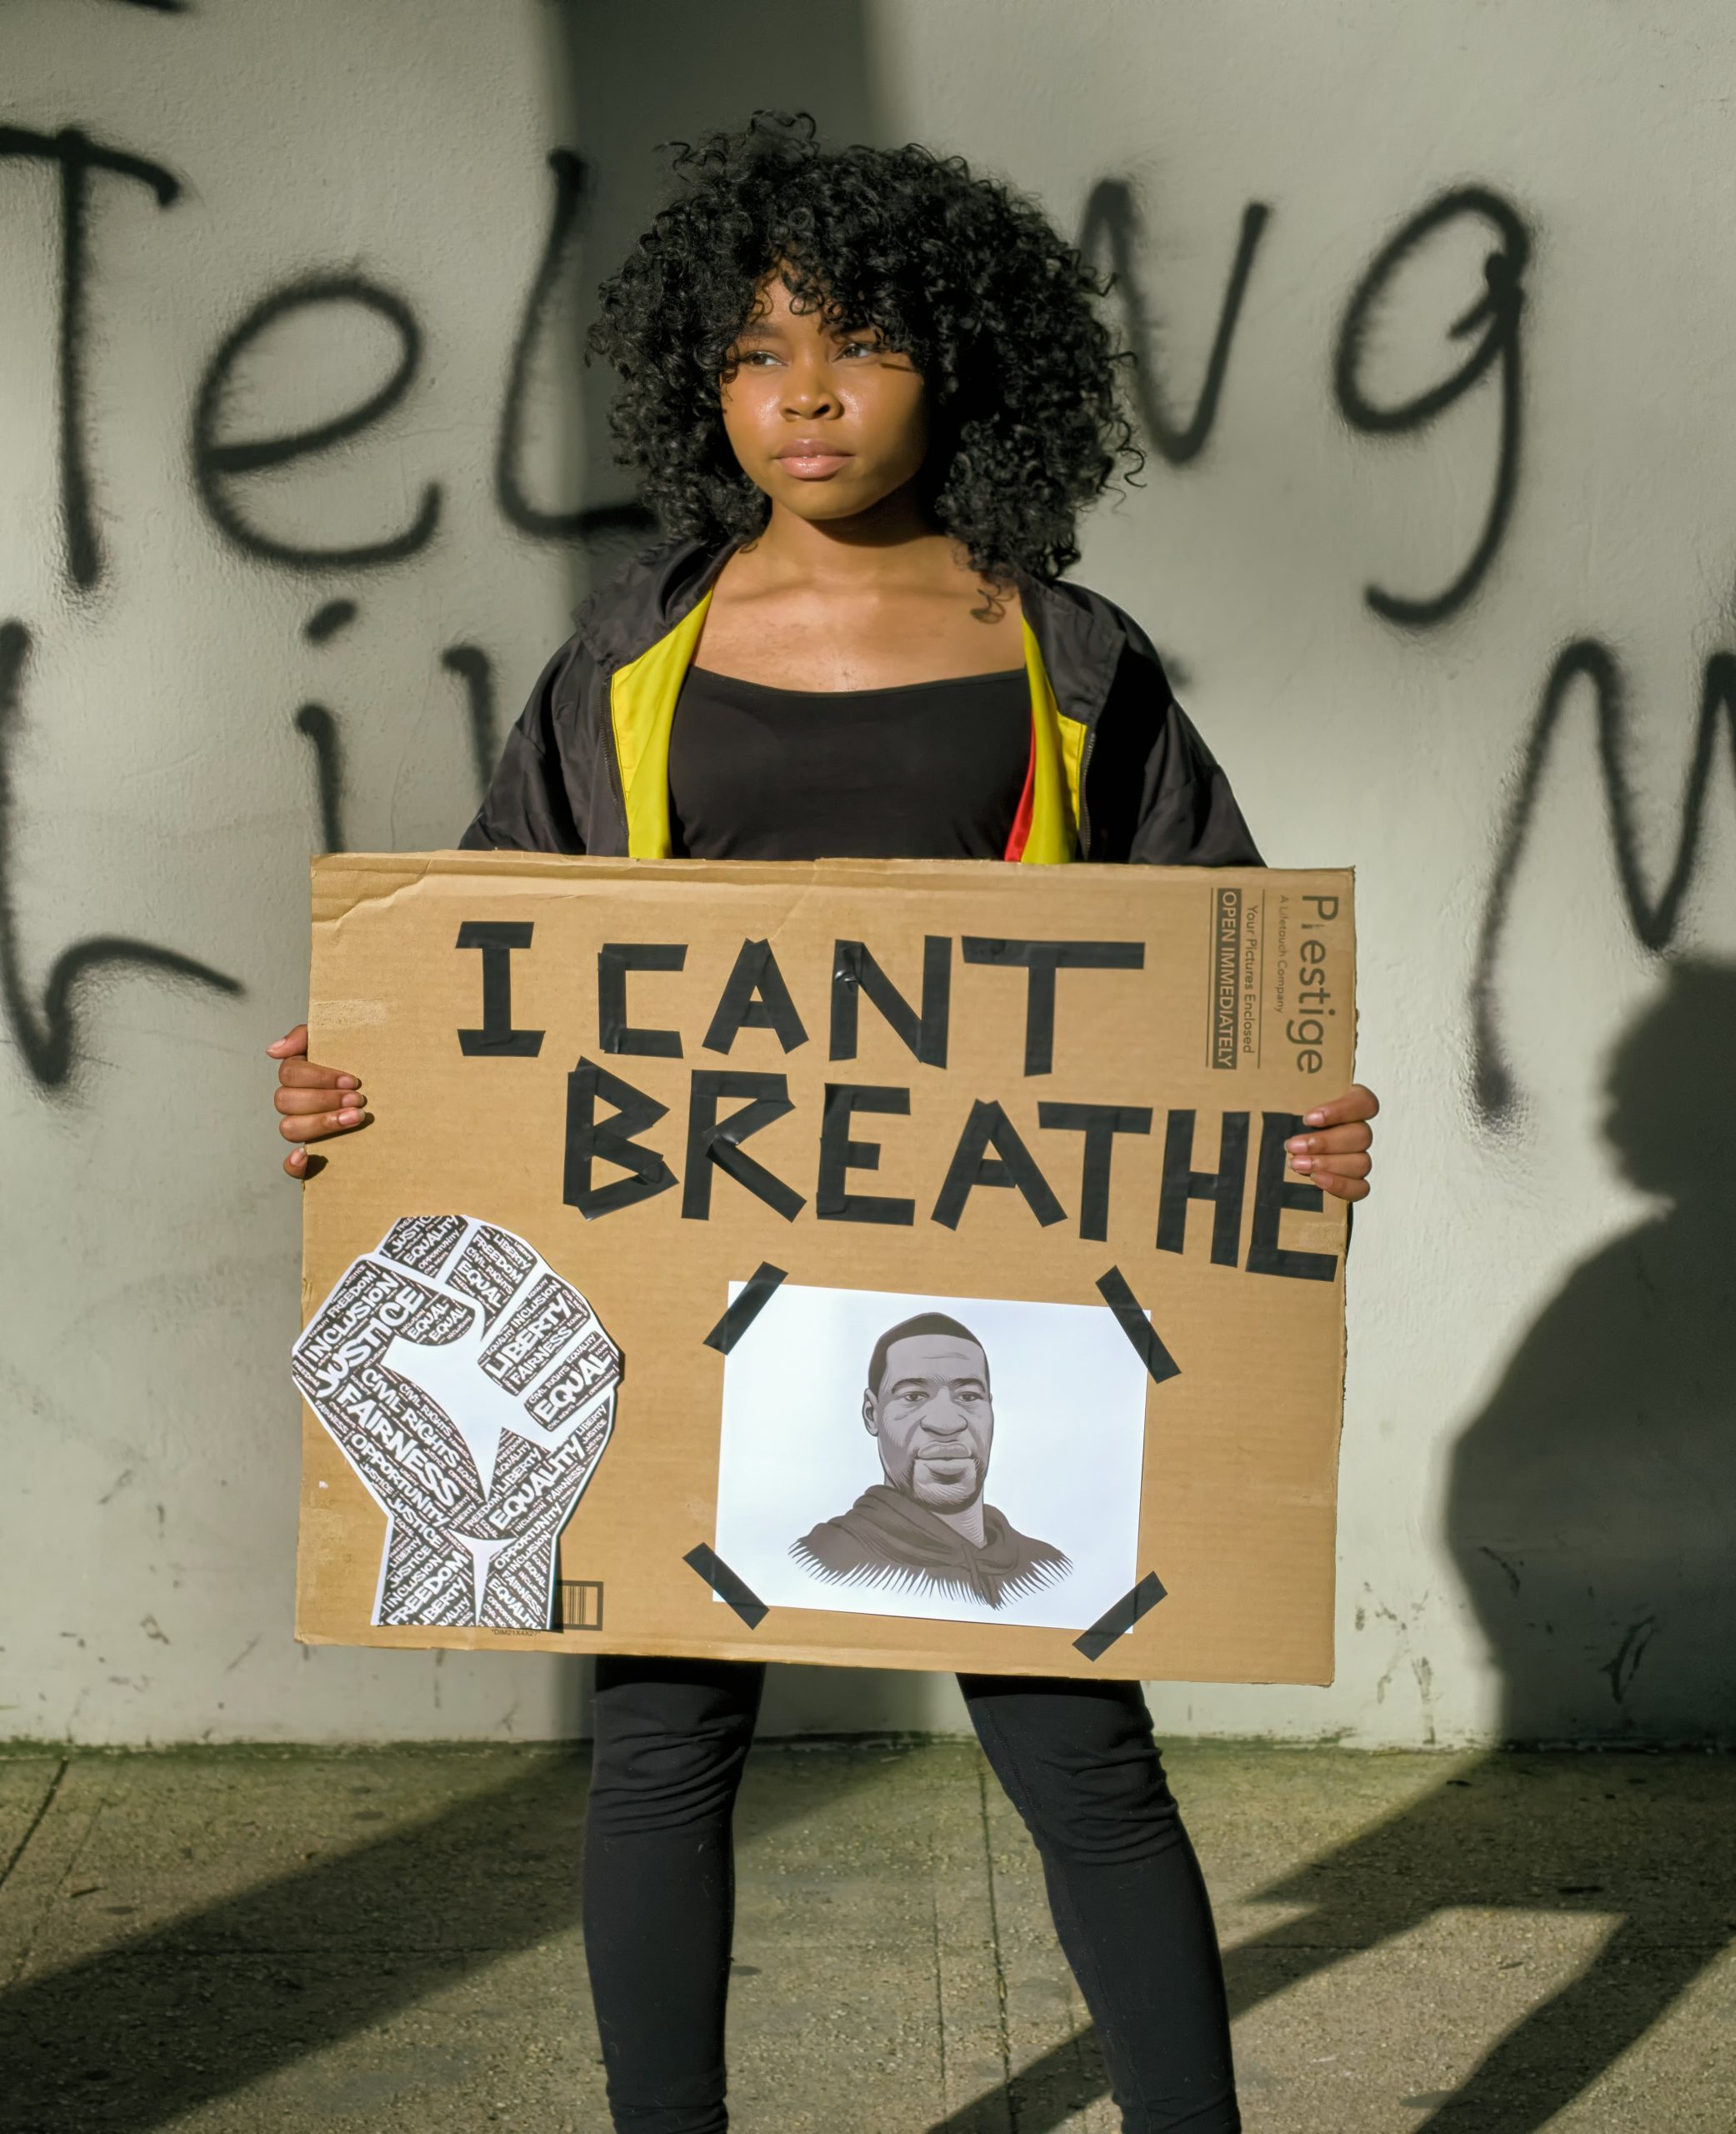 """I Can't Breathe"": From a Cry for Help to Battle Cry"